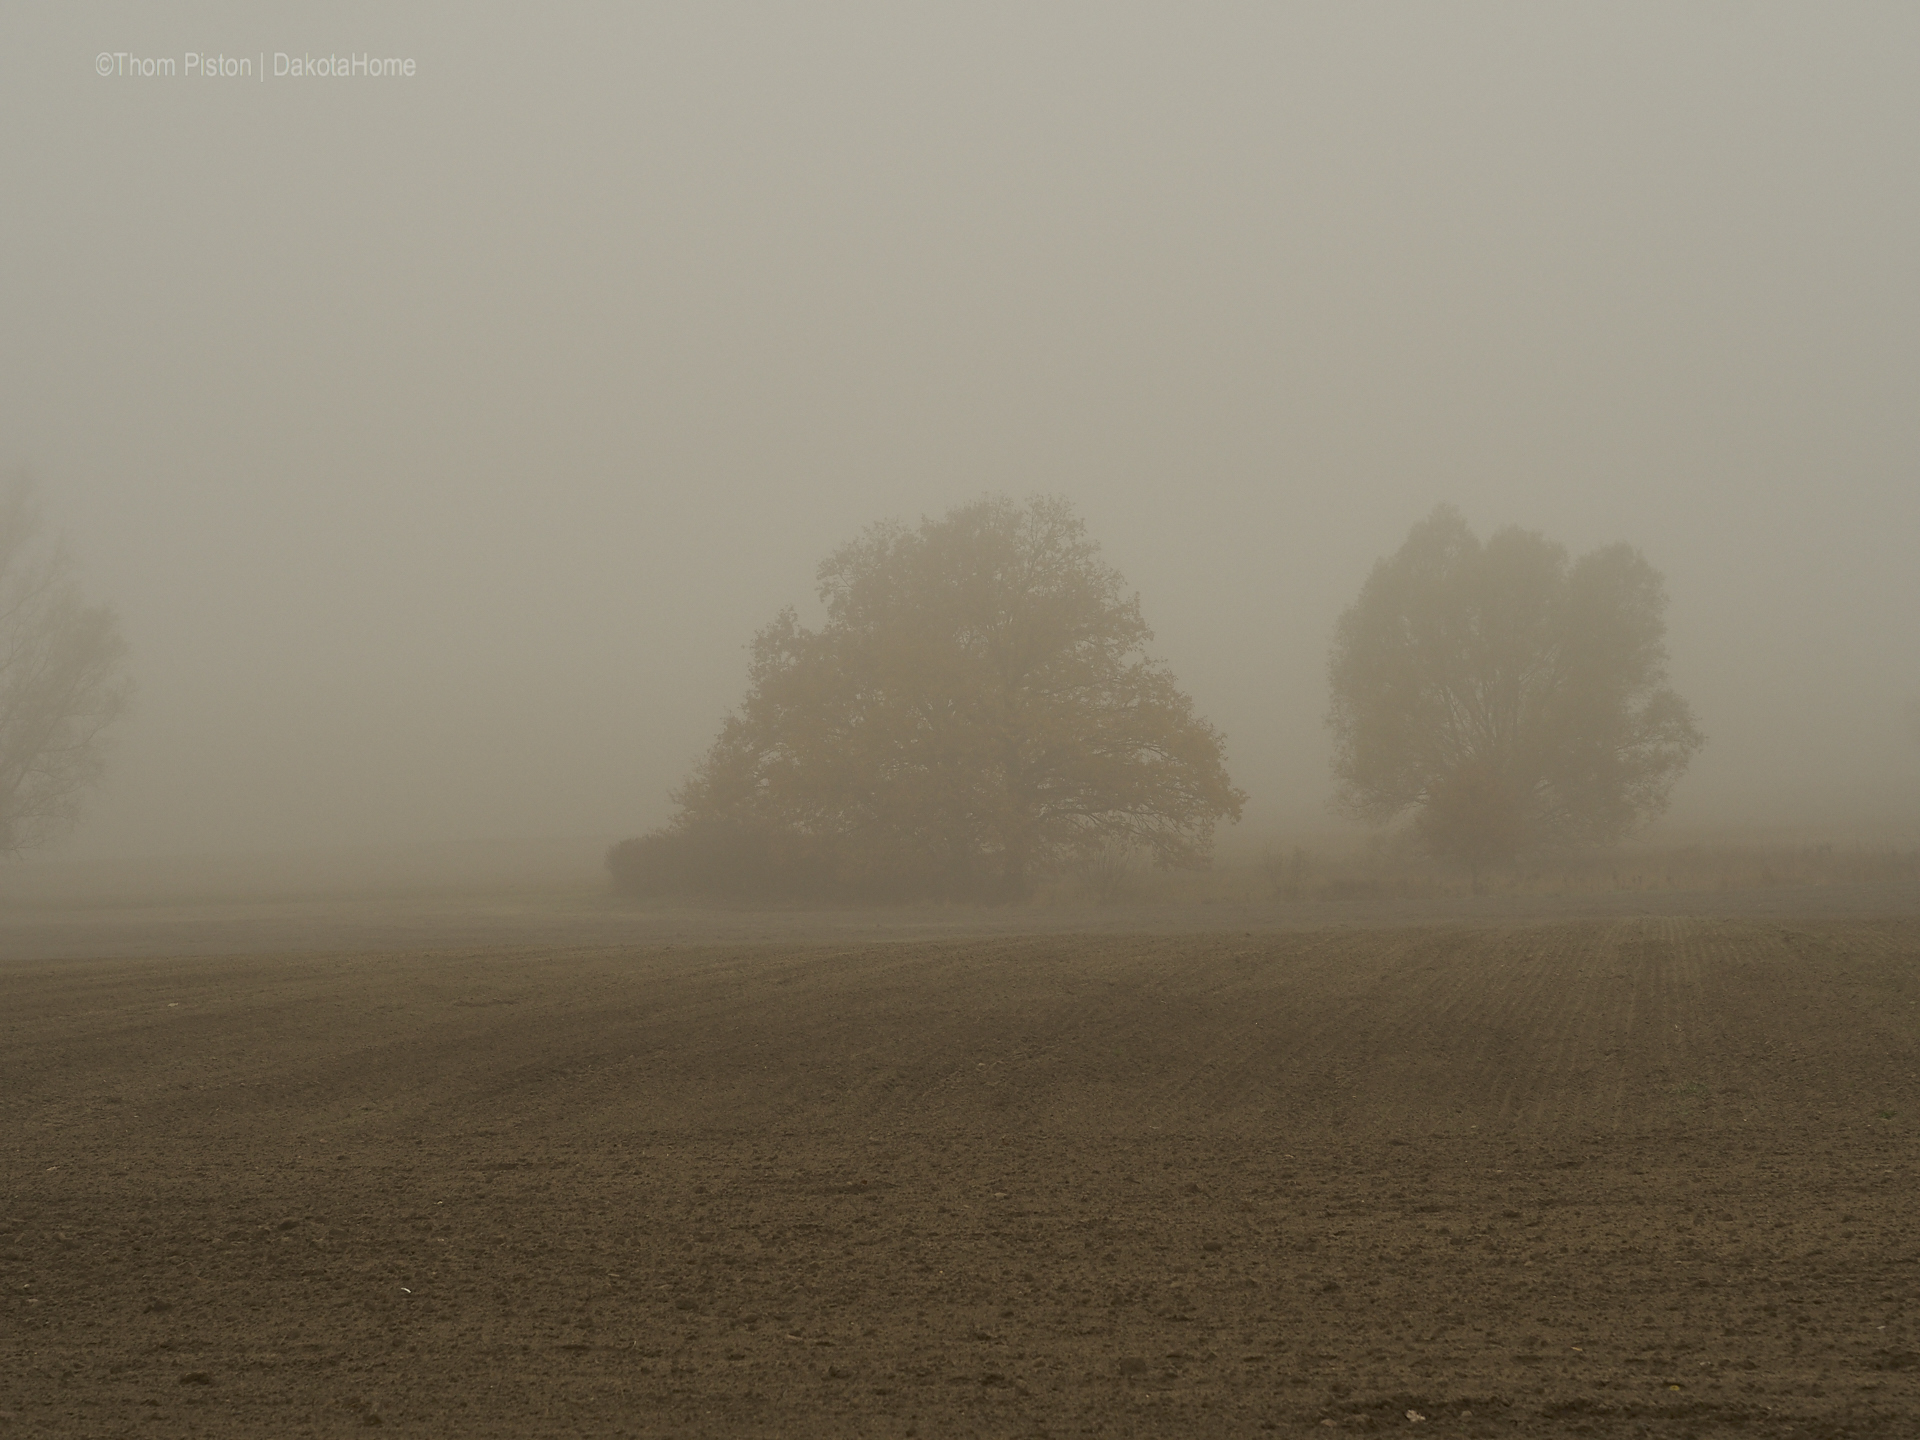 Mitte November, Nebel in Brandenburg